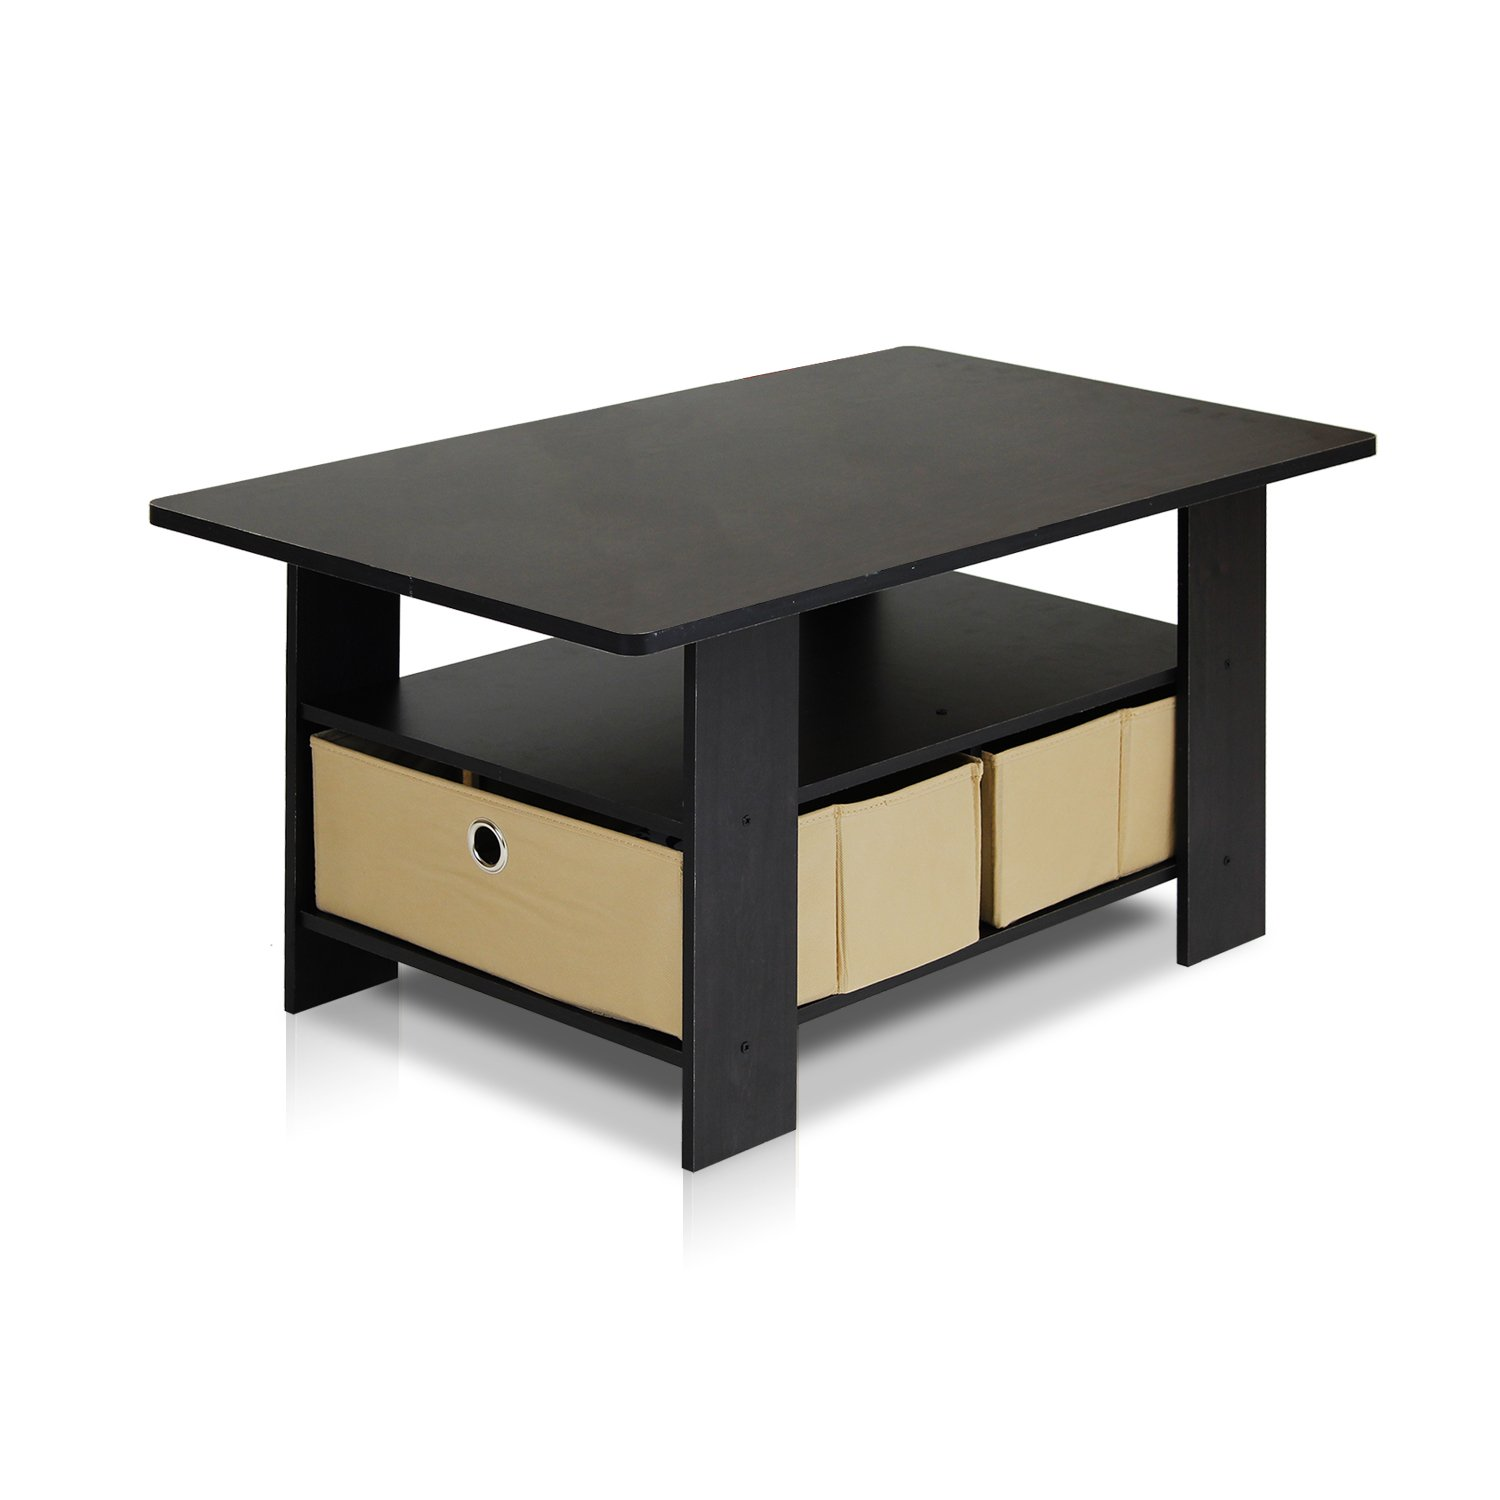 Espresso Coffee Table With Storage: Small Coffee Table Living Room Furniture Dorm Desk Home